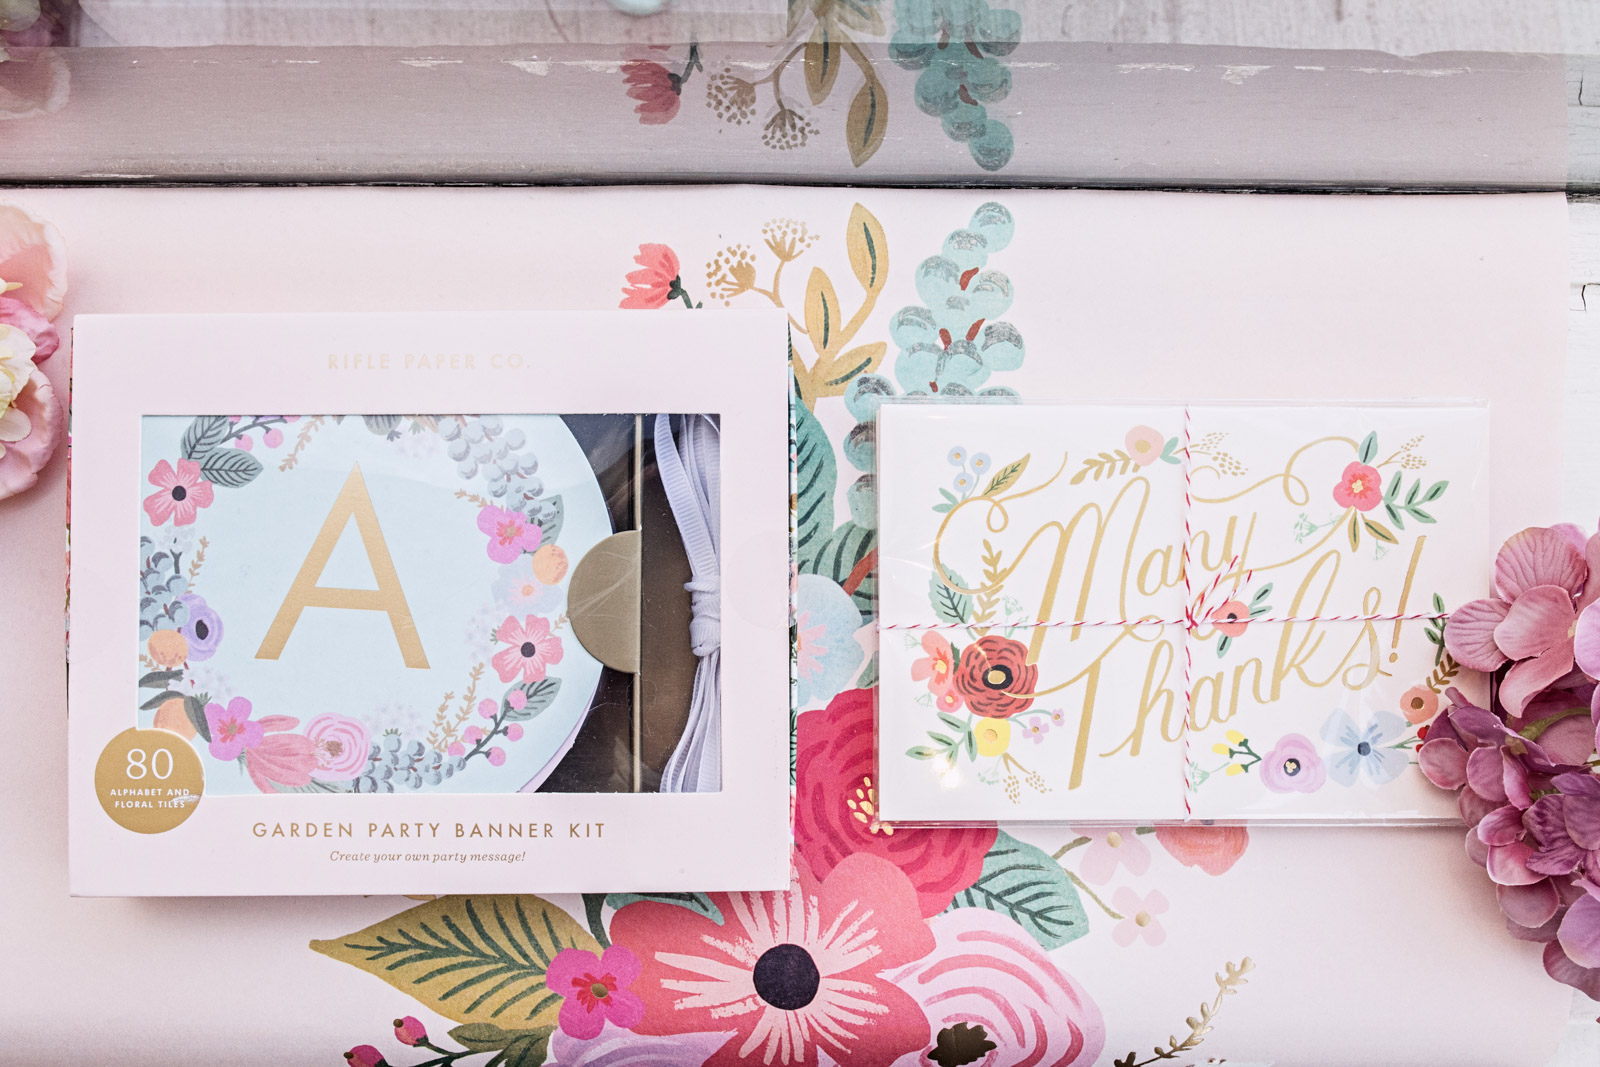 Meadow boutique seattle retail clothing store Yuliya Rae photography branding services-3.jpg